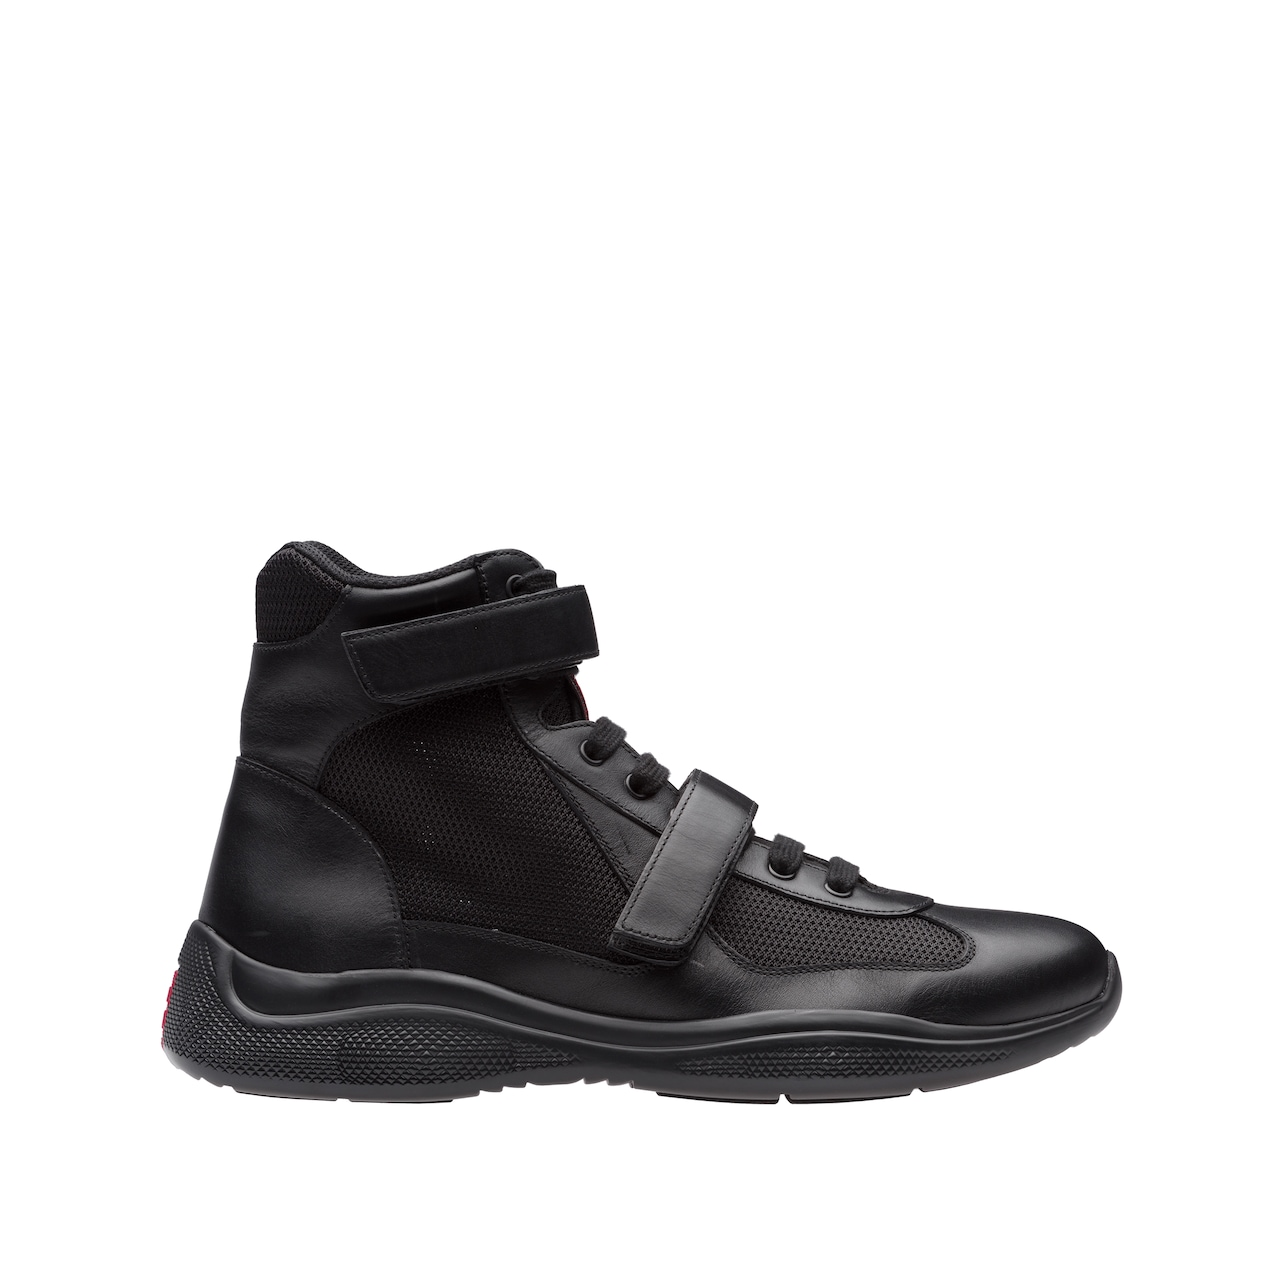 Leather and fabric high-top sneakers